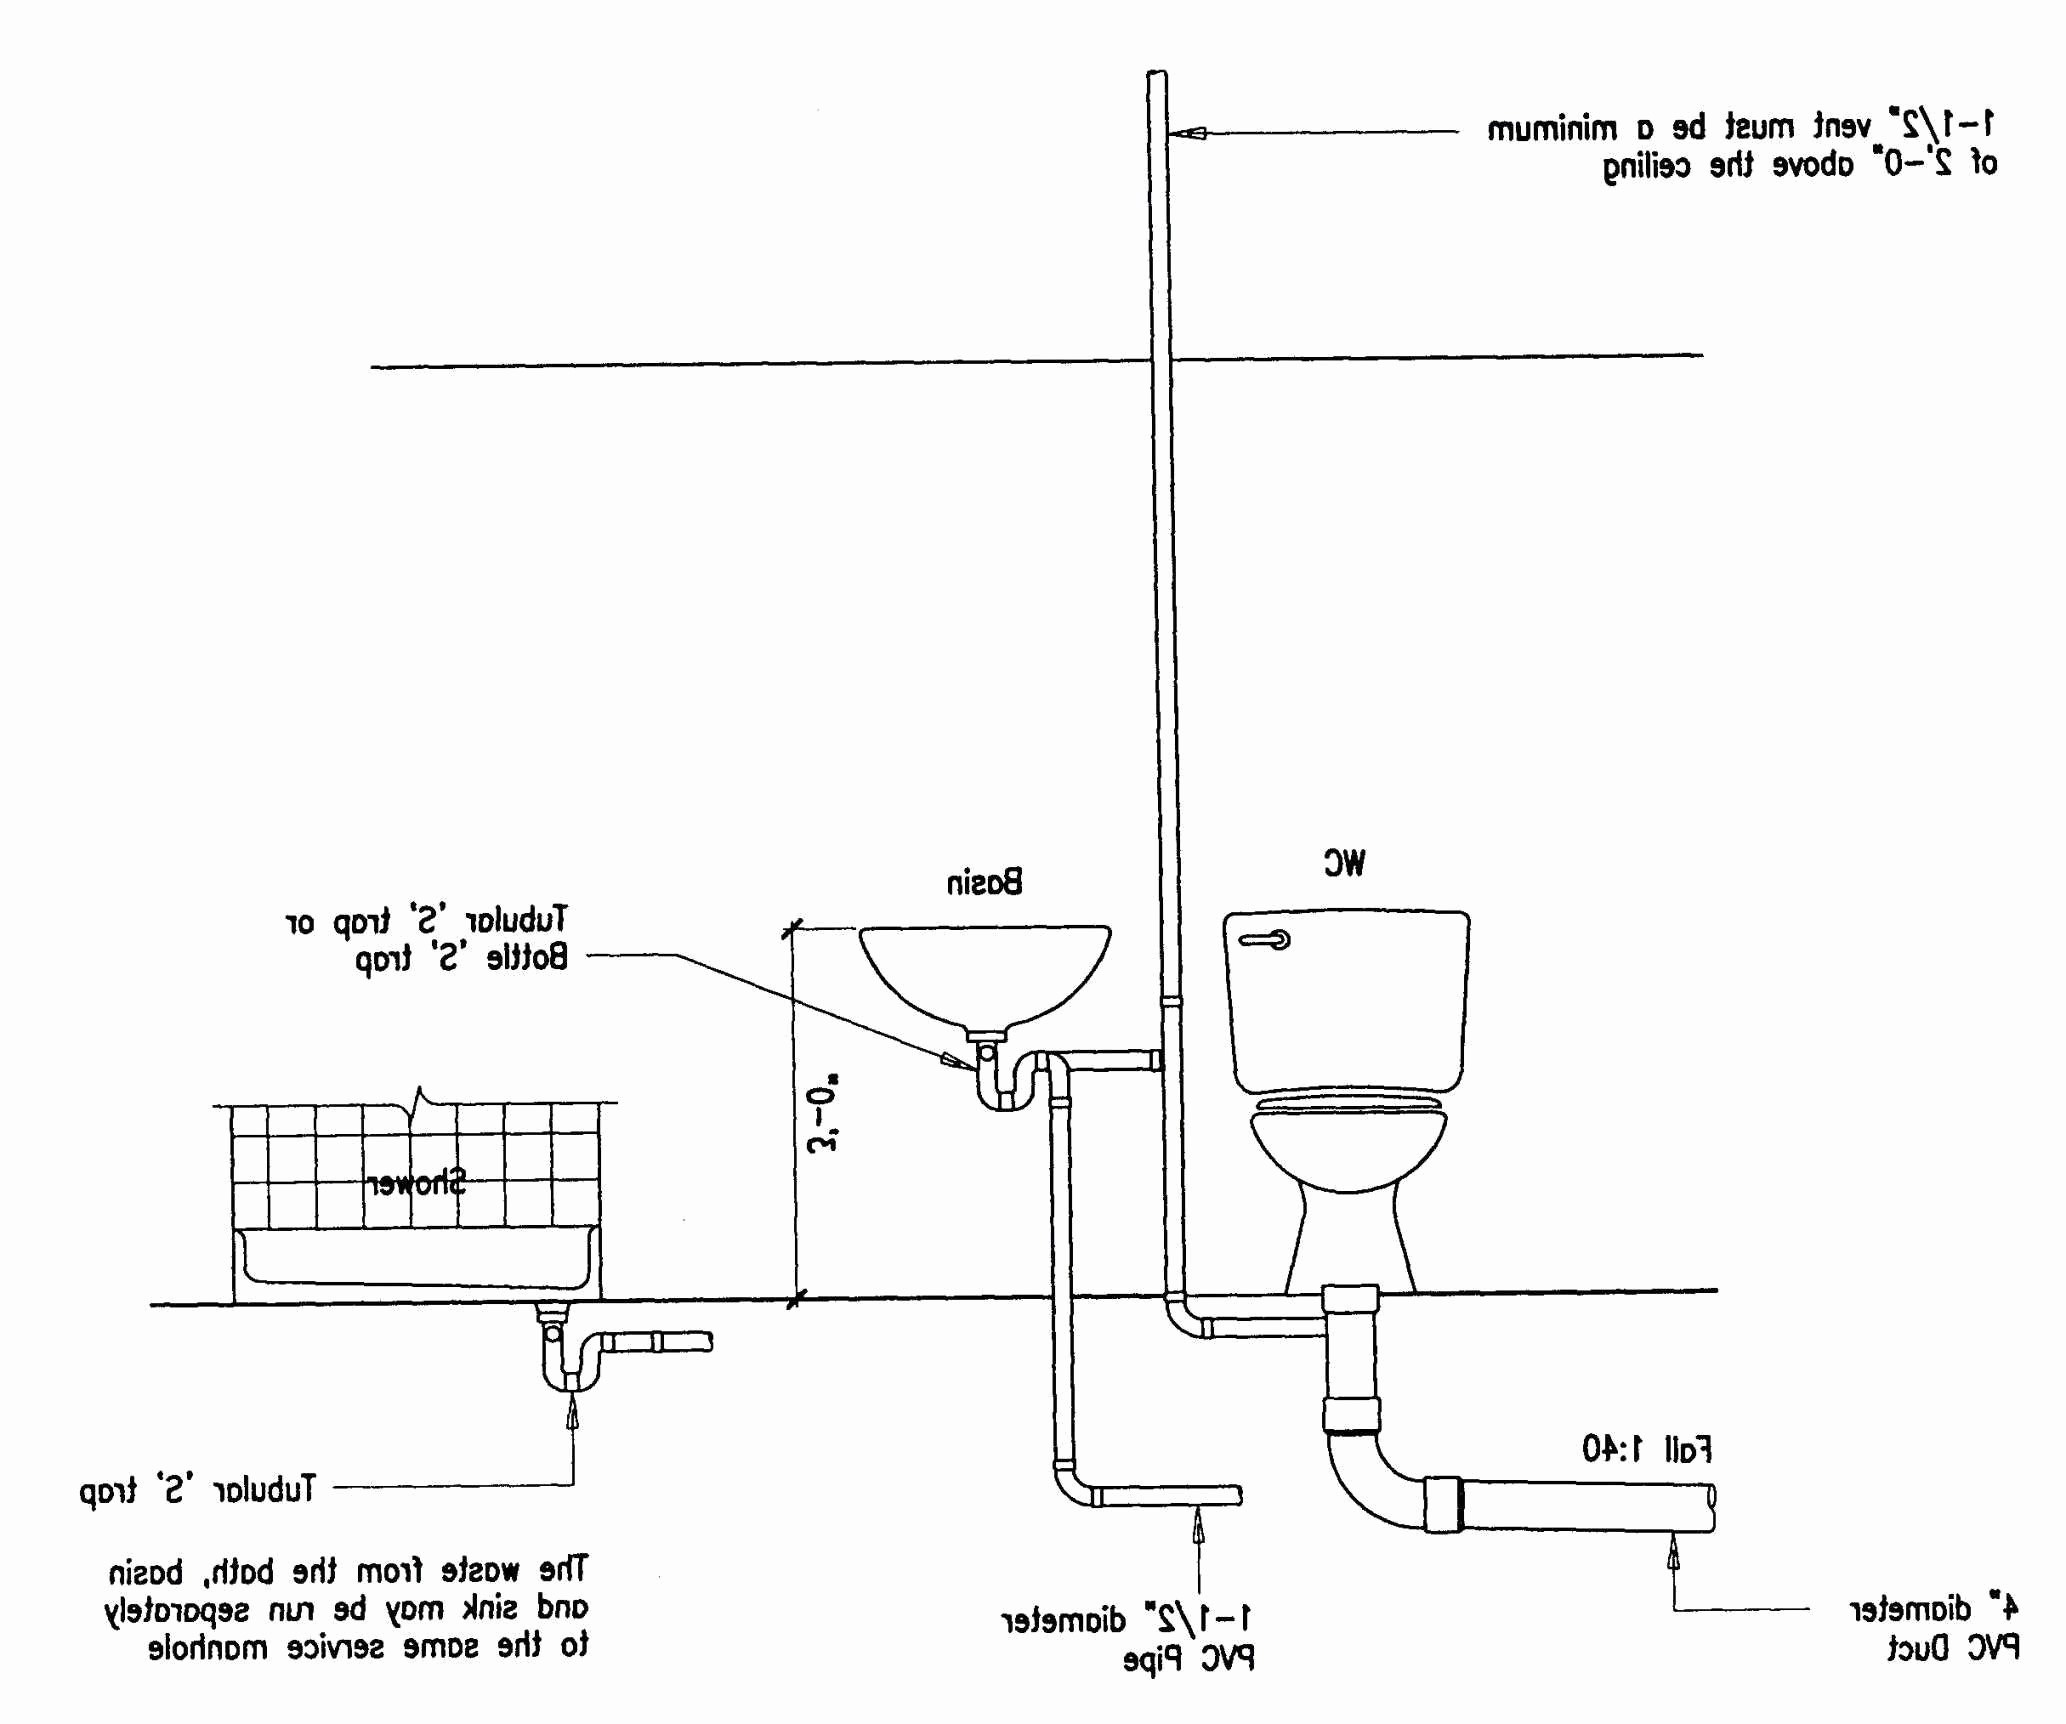 Bathtub Diagram Of Parts Bathroom Sink Drain Parts Best 40 New What are the Parts A Of Bathtub Diagram Of Parts